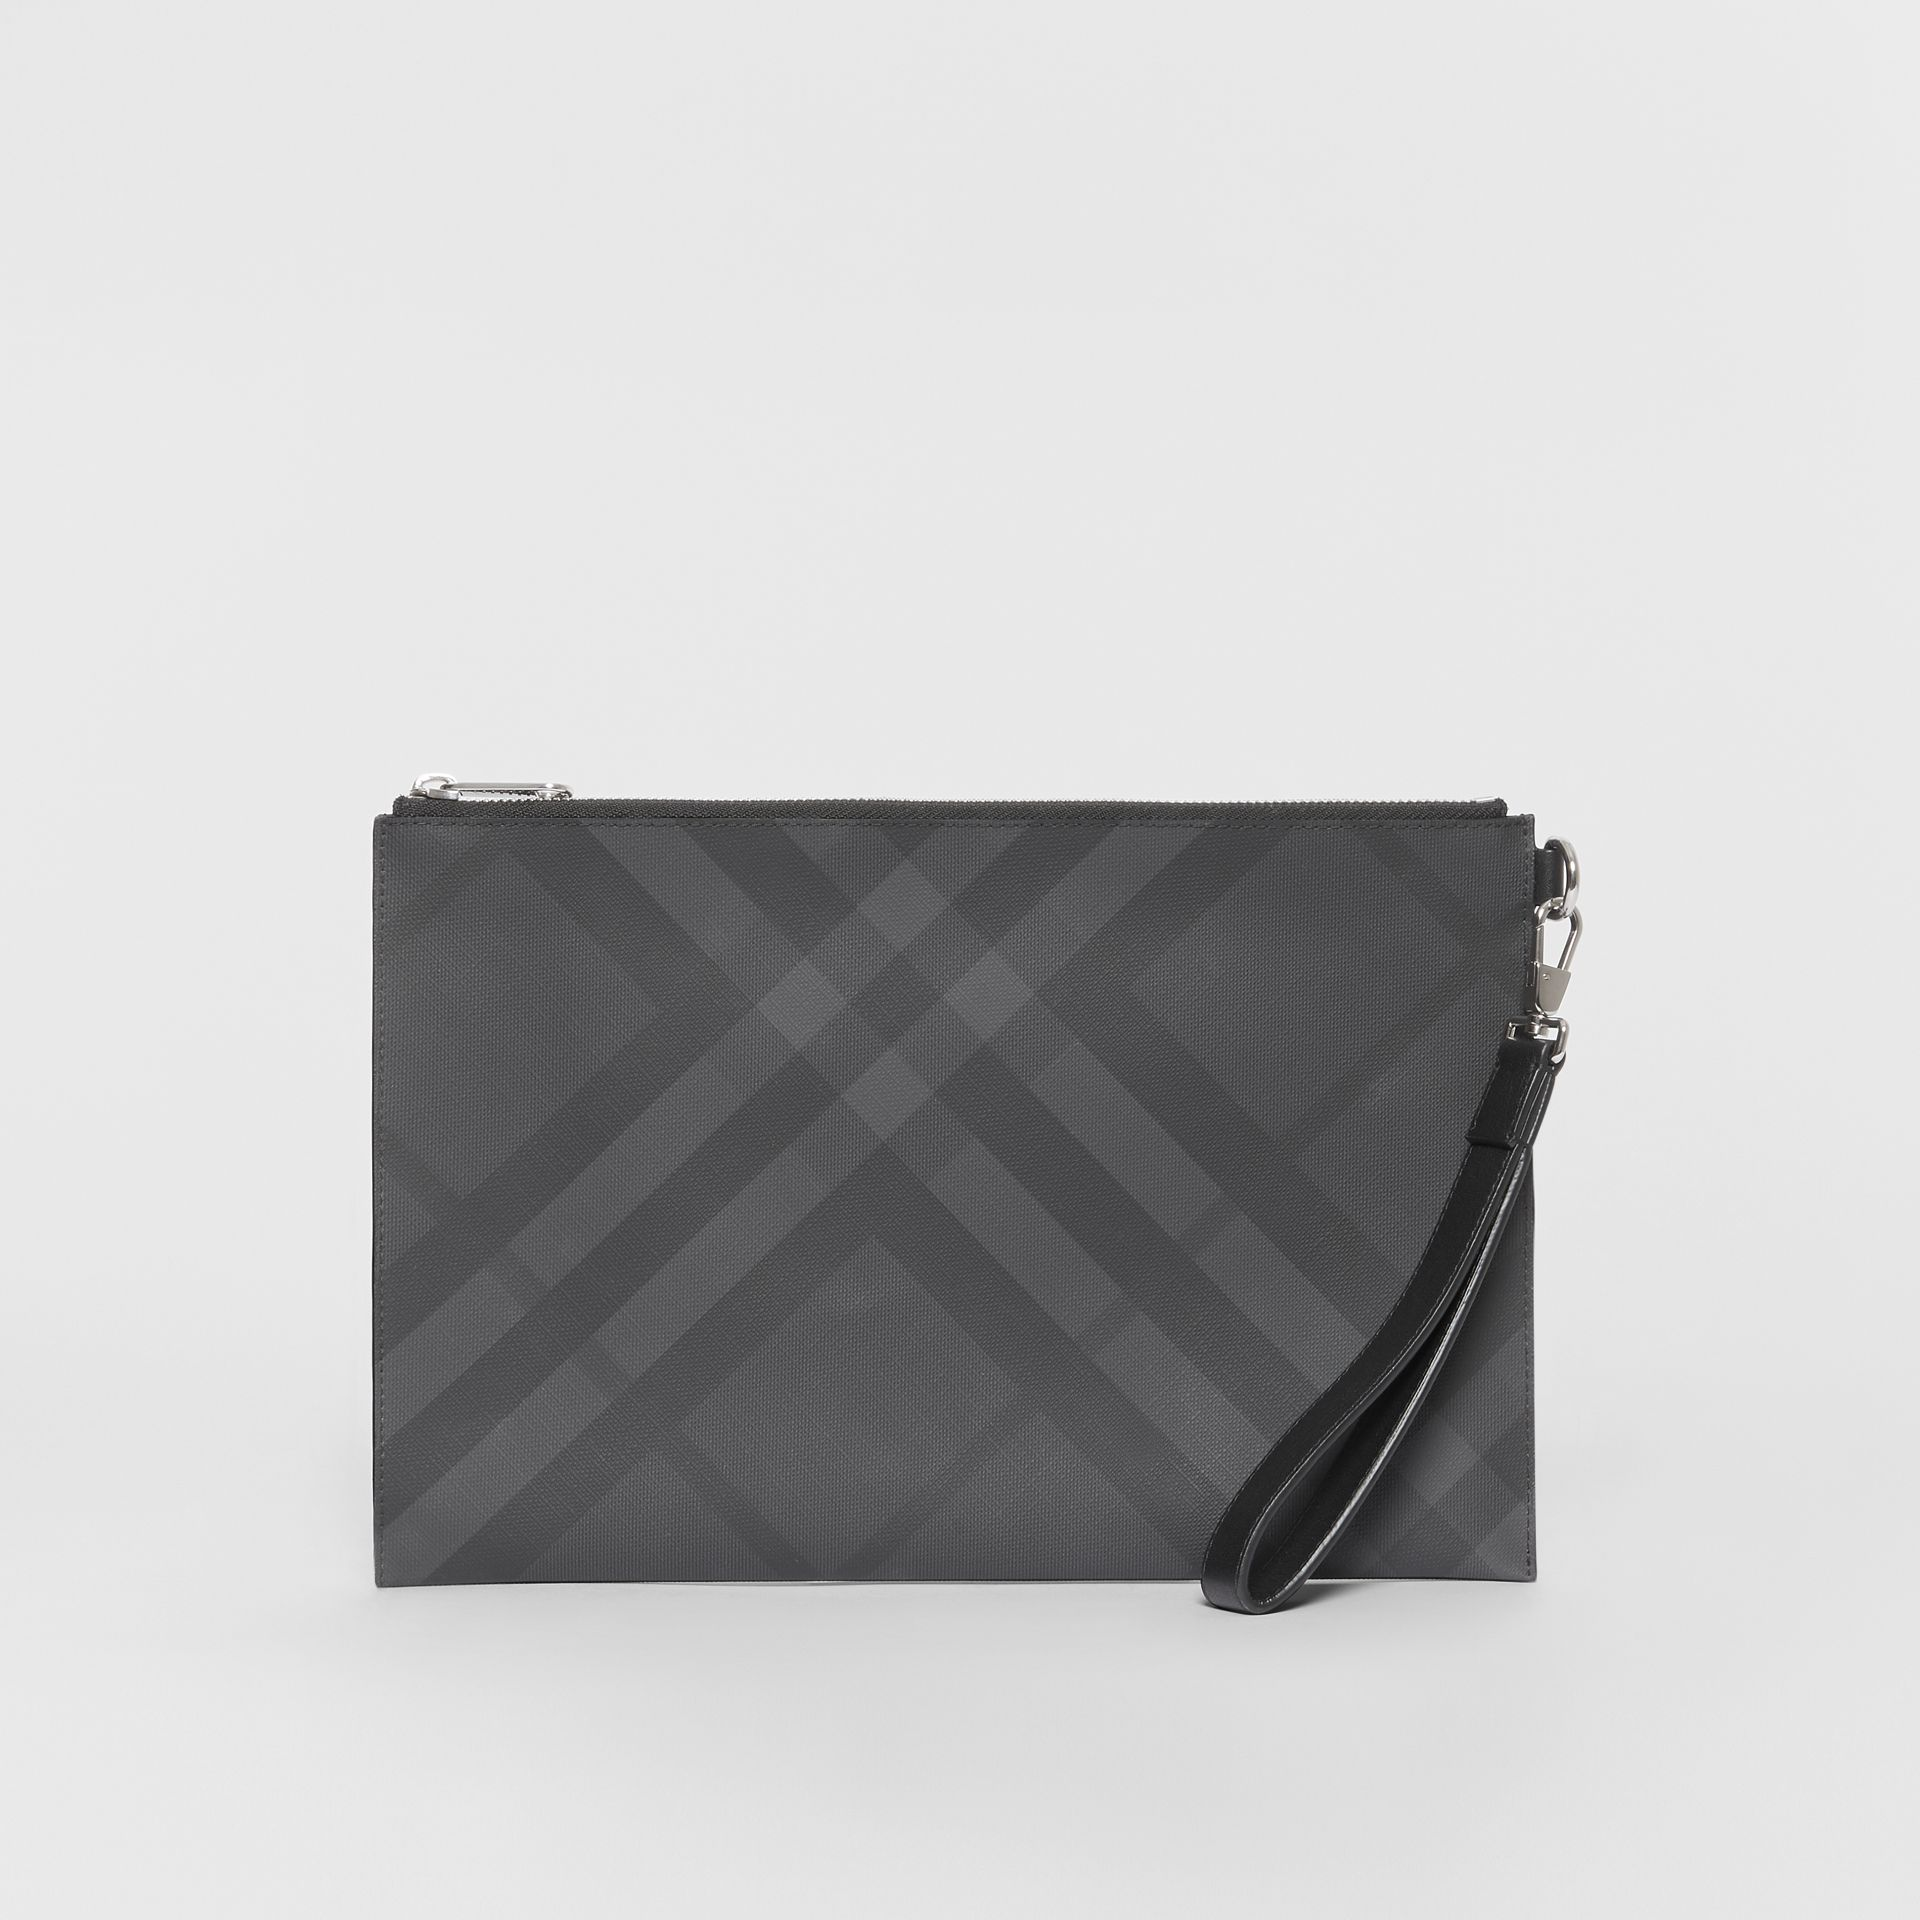 Pochette zippée London check avec cuir (Anthracite Sombre) - Homme | Burberry - photo de la galerie 6